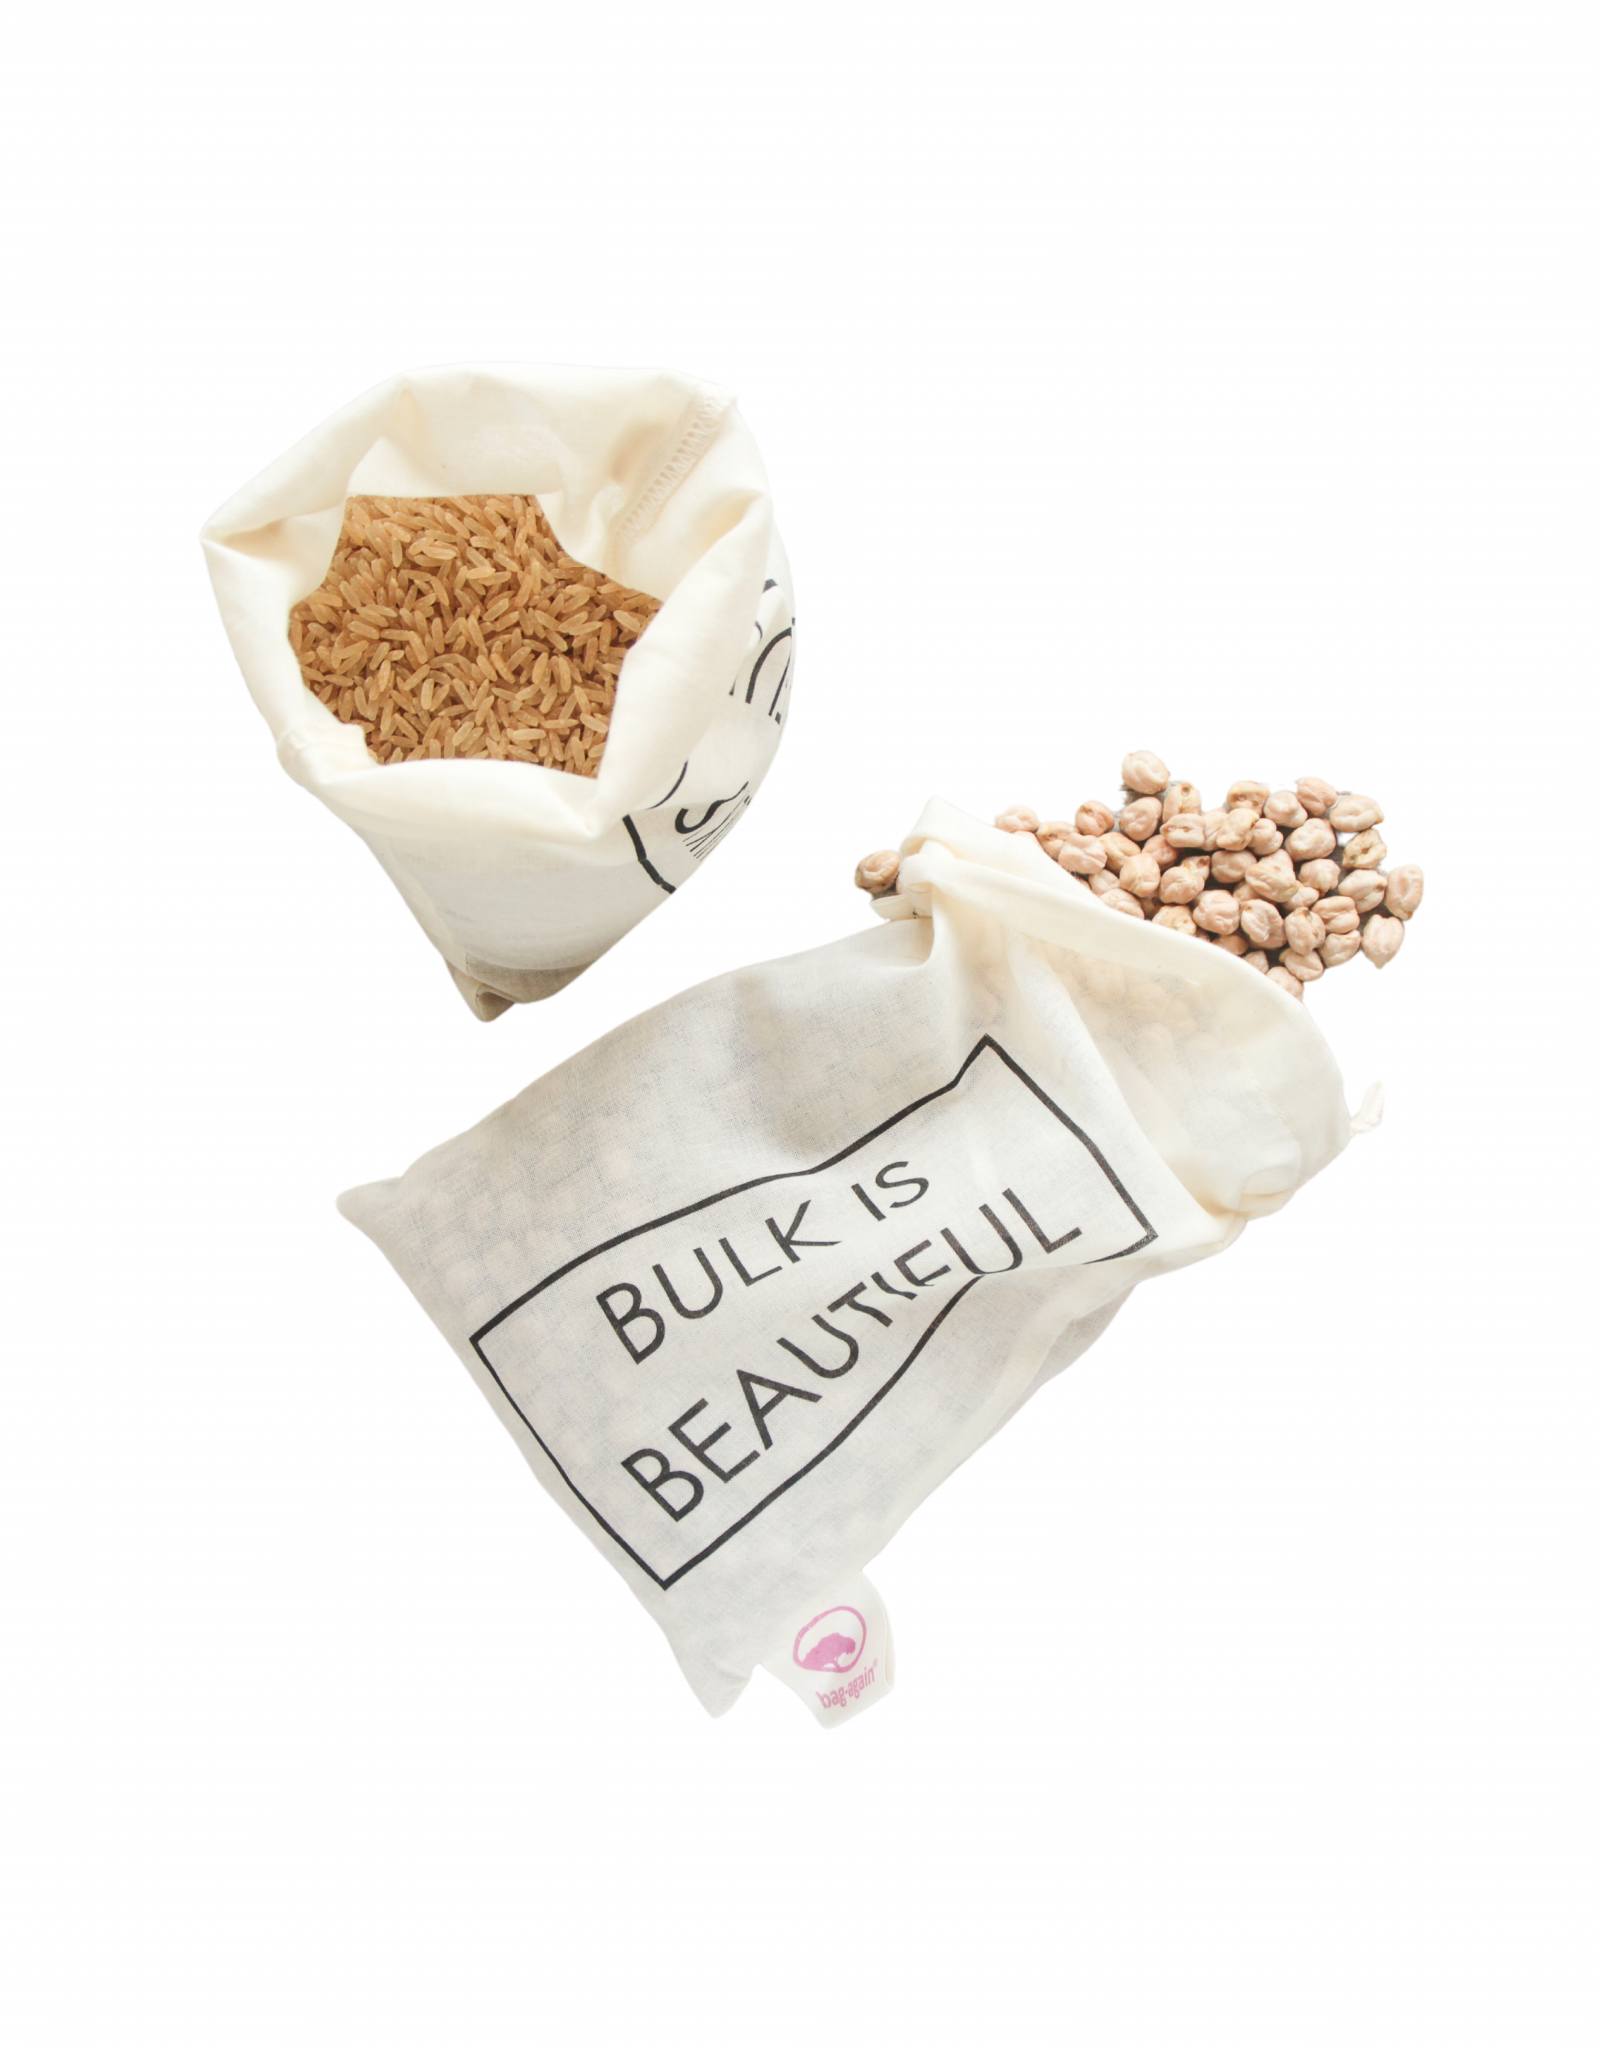 Bag-again® original Bulkzakje - Bulk is beautiful